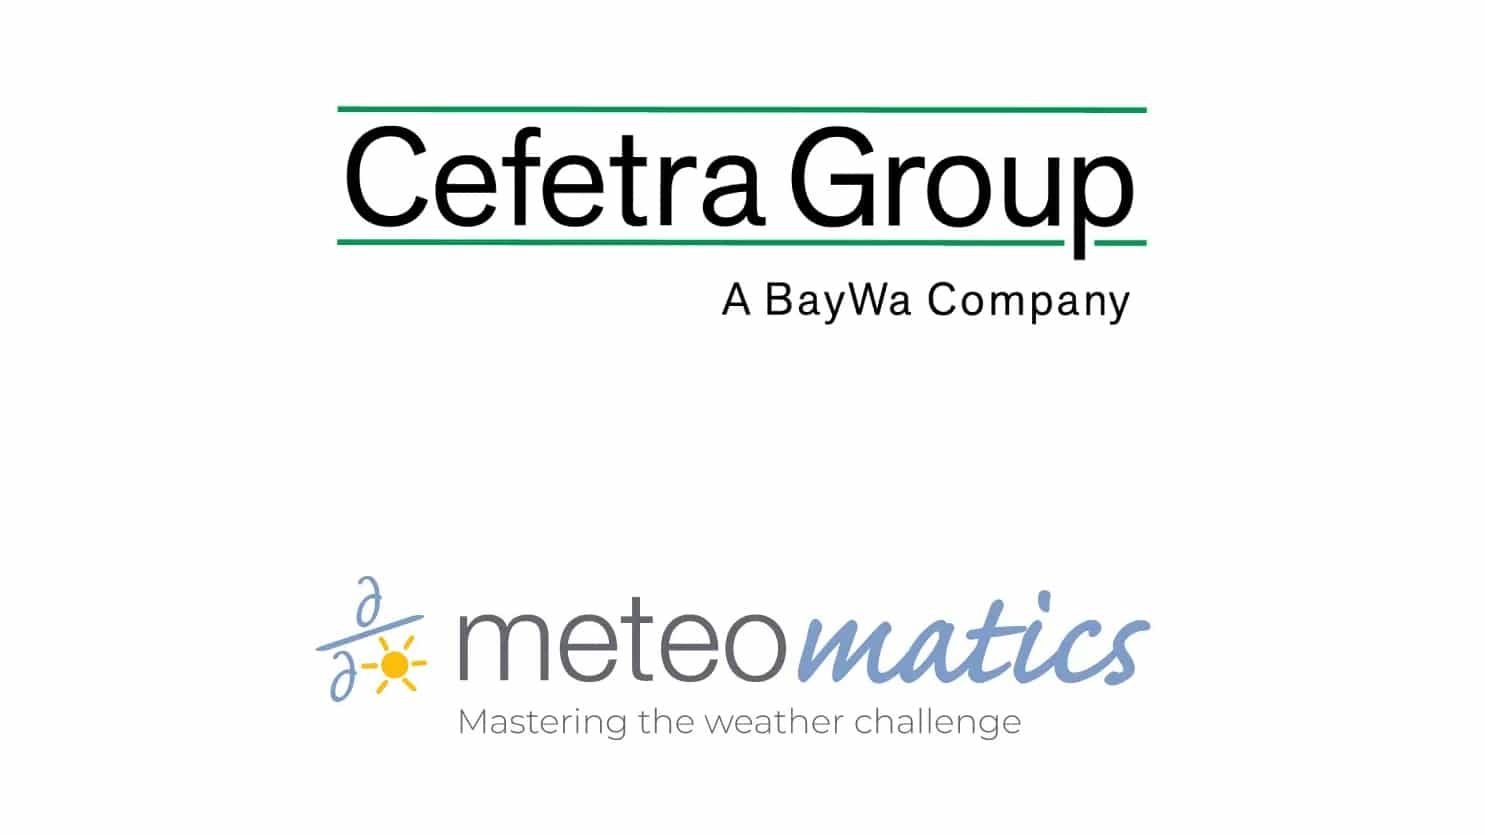 Meteomatics & Cefetra Group Agree Strategic Partnership: Improving The Supply of Agricultural Feed, Fuel & Food Services